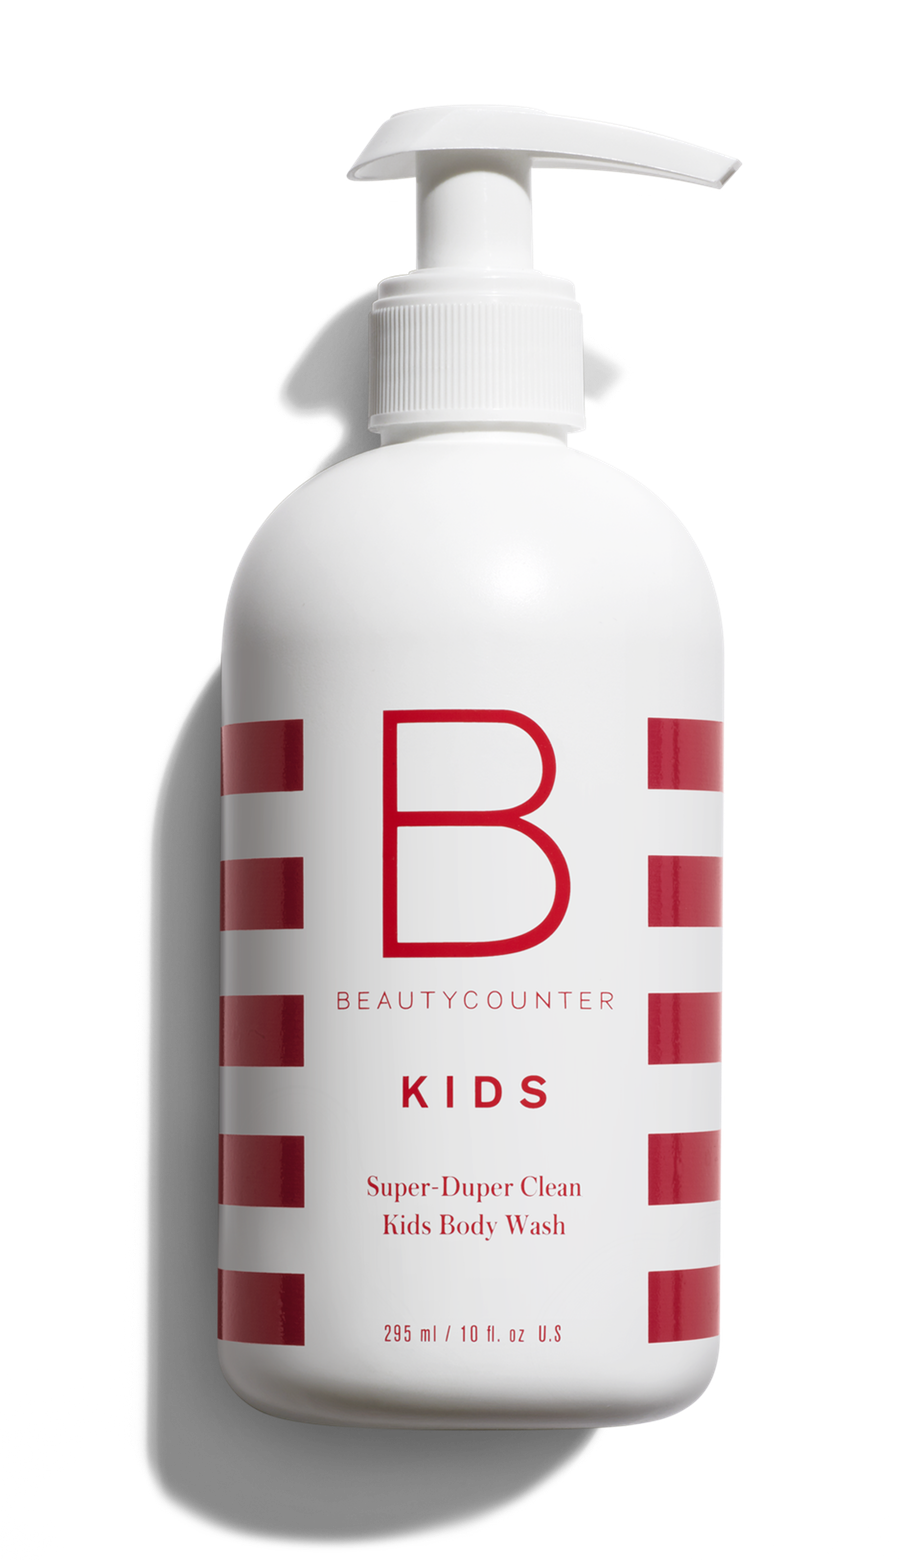 beautycounter-kids-bodywash.png